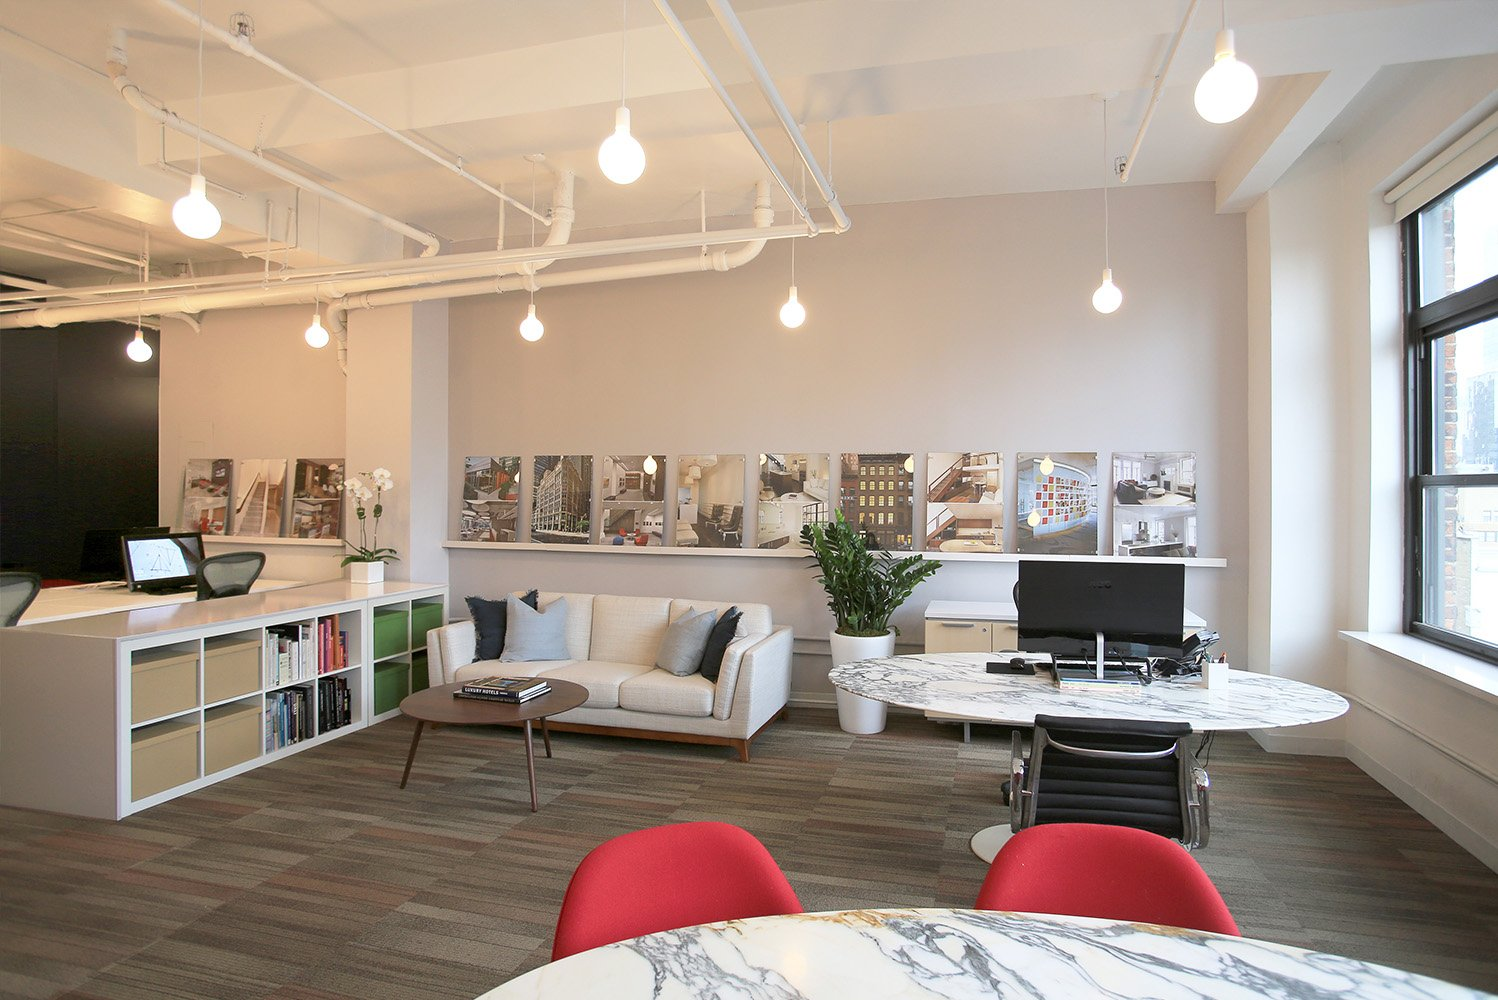 Navigate Design is a Toronto-based firm that specializes in hospitality, residential and retail design.